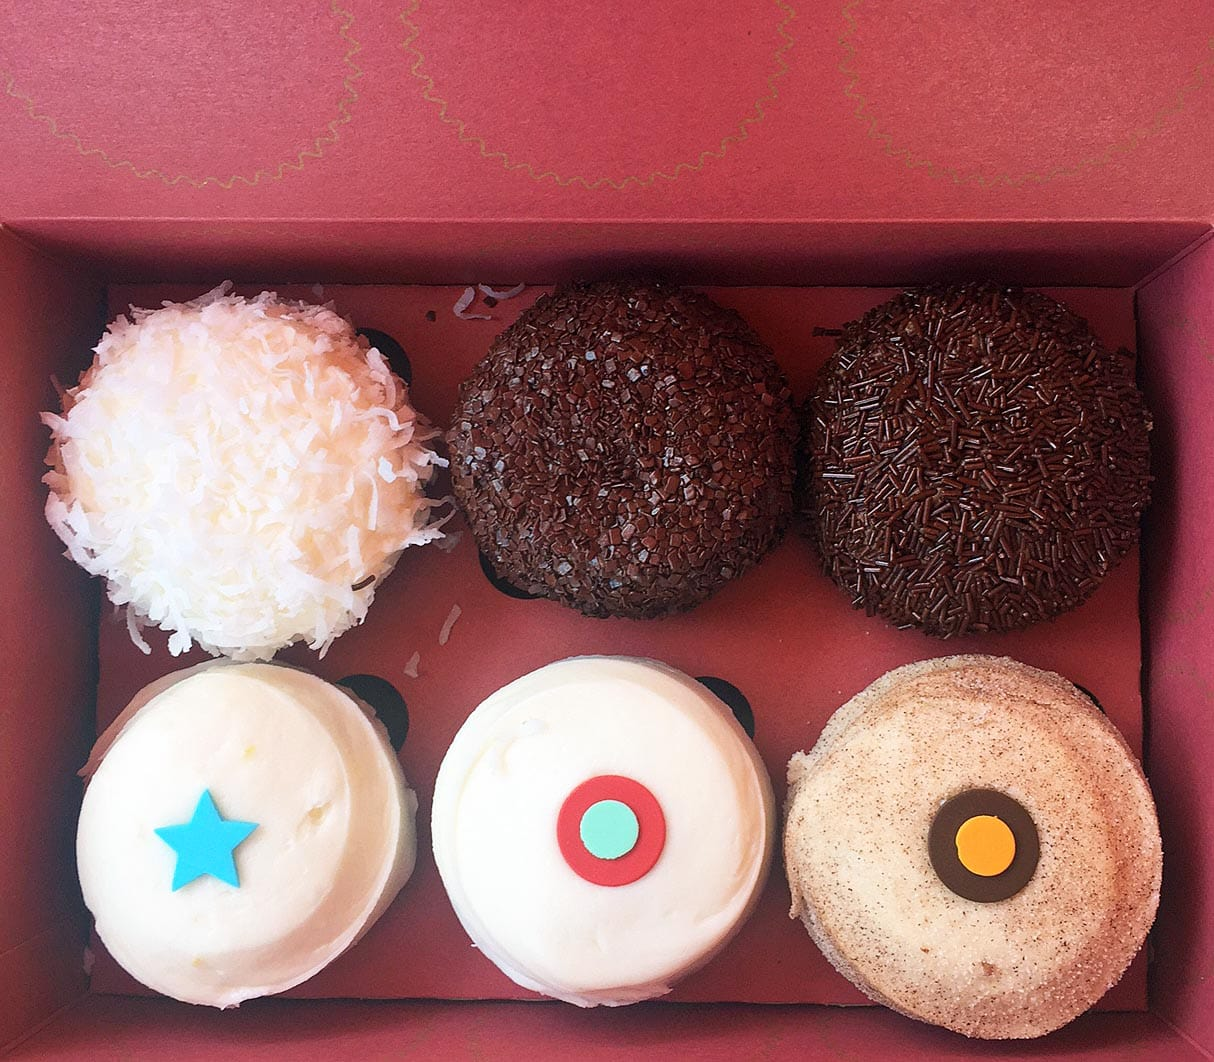 Best Places to Eat in Orange County. The most popular restaurants, food, and dessert in California. www.modernhoney.com Sprinkles Cupcakes in Corona del Mar